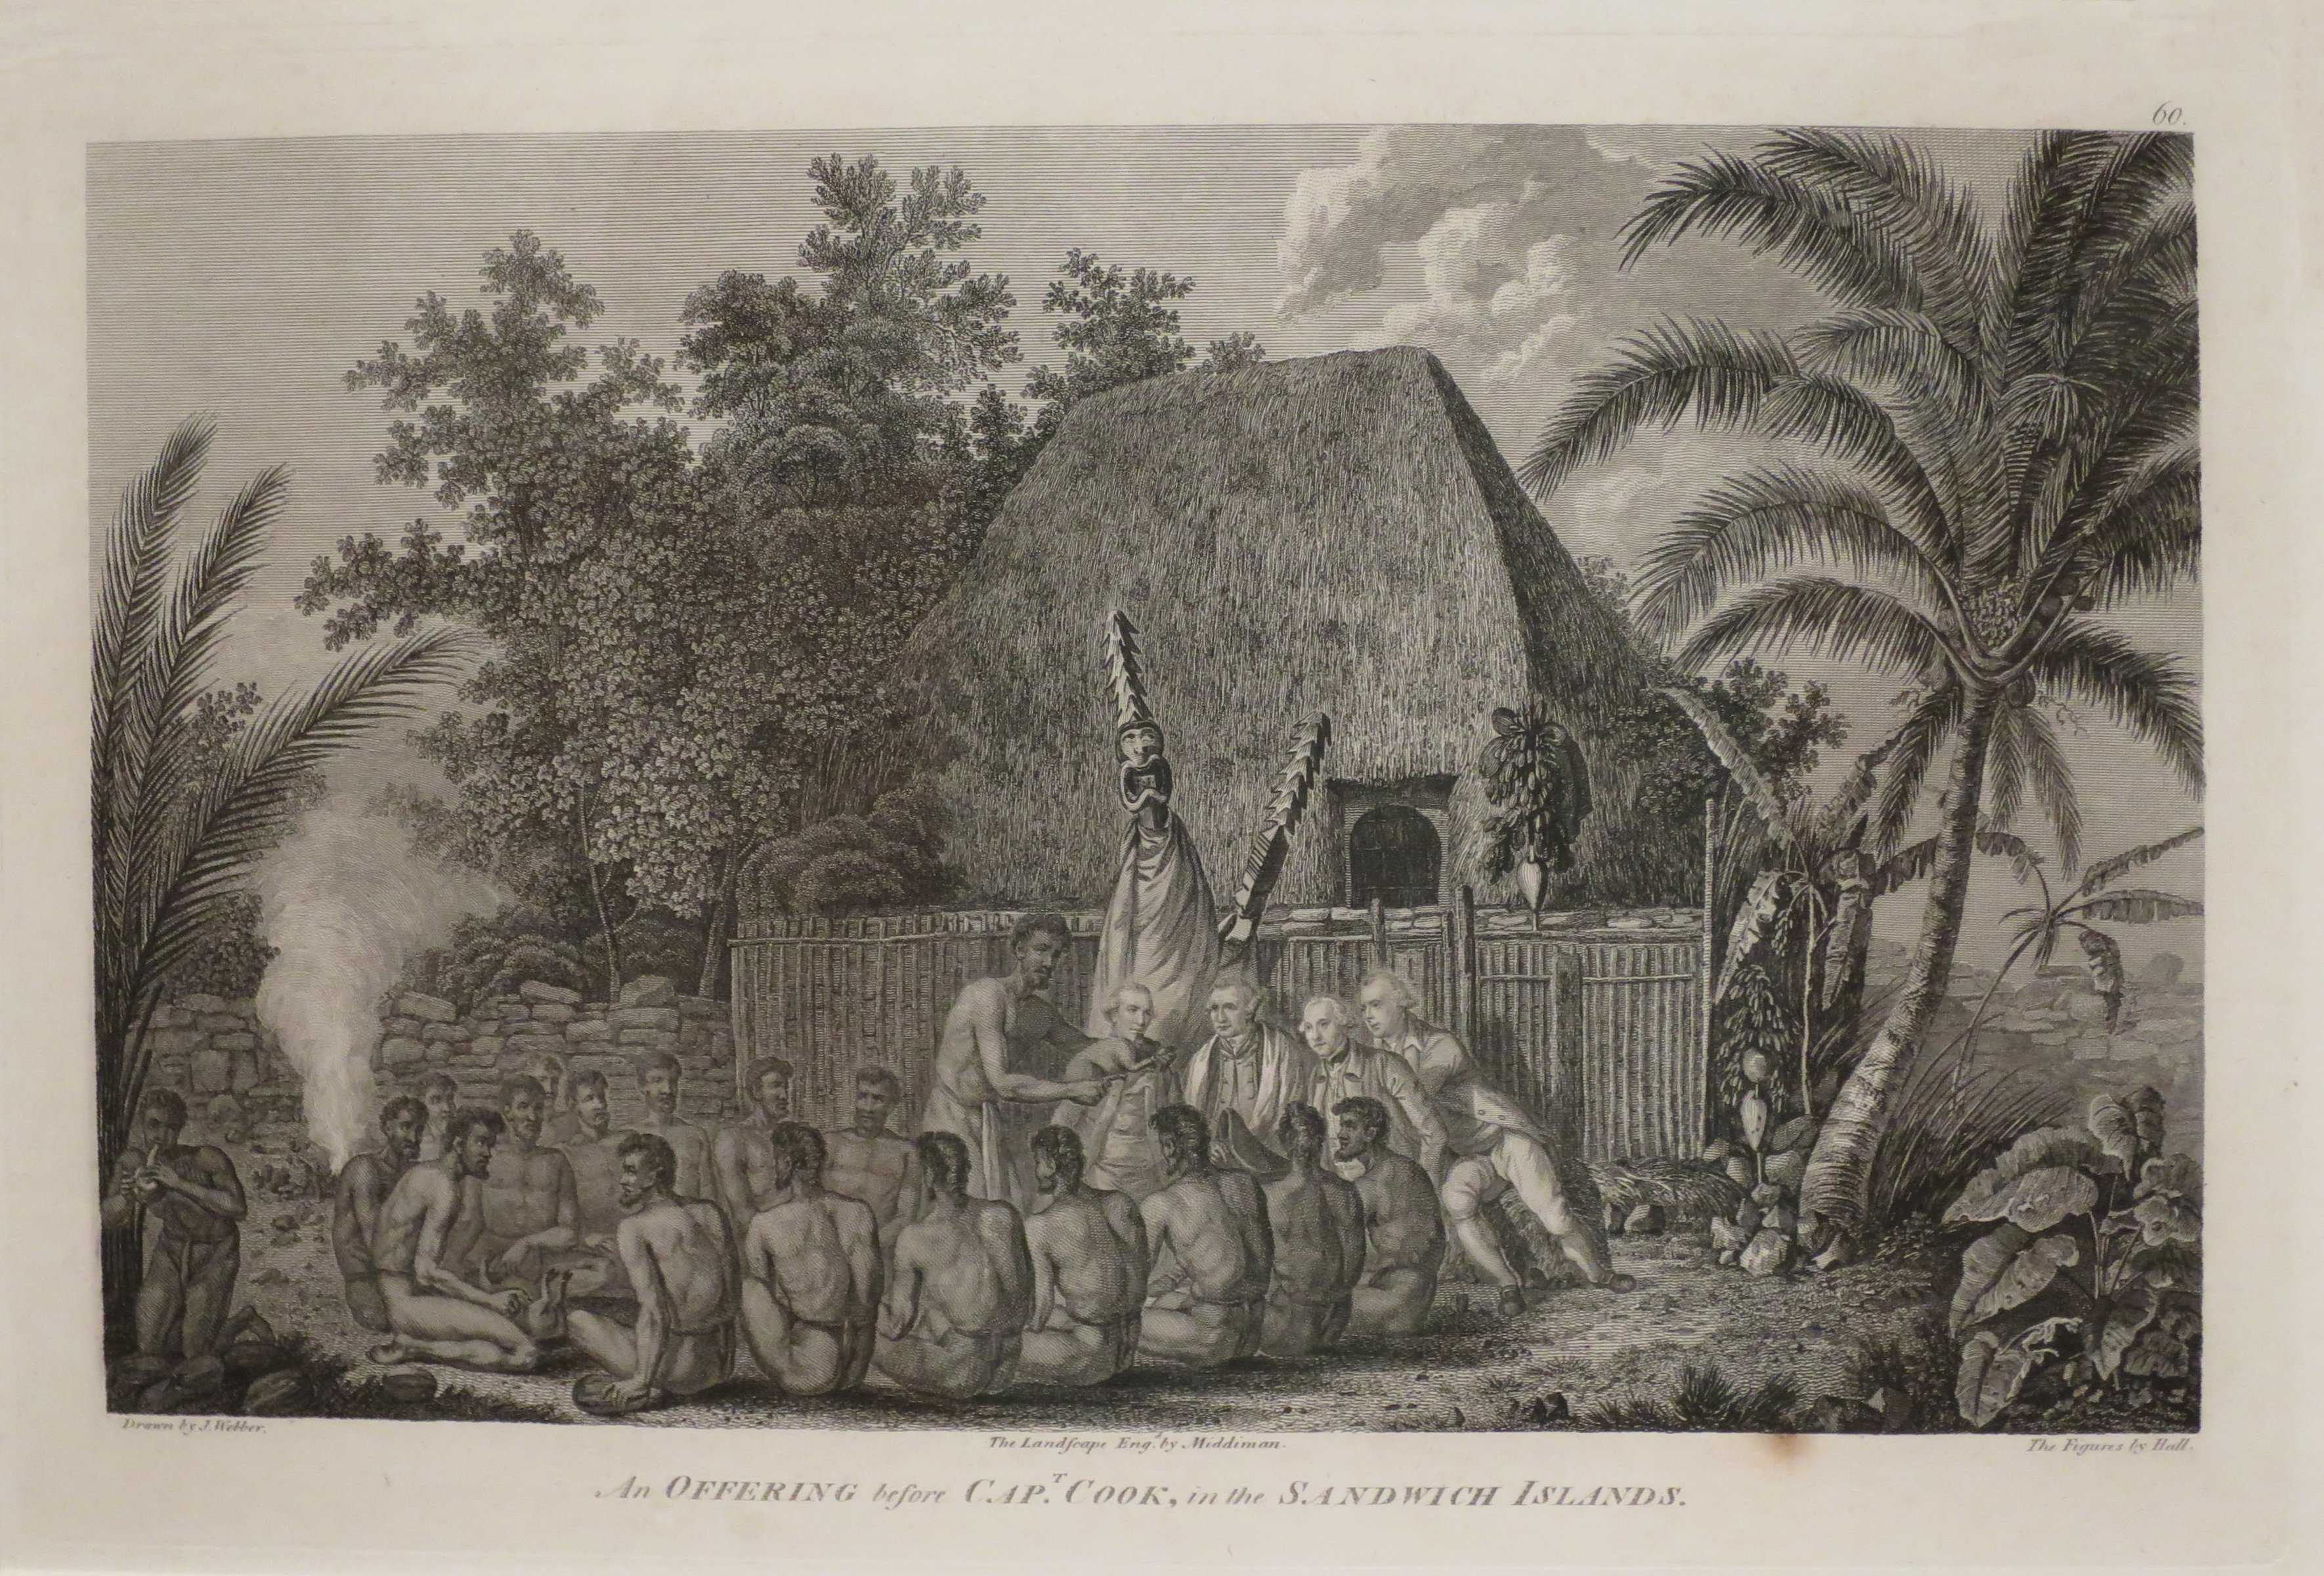 An Offering before Captain Cook in the Sandwich Islands engraving after John Webber, Honolulu Museum of Art, accession 5734. Landscape engraved by Samuel Middiman, and figures engraved by John Hall.